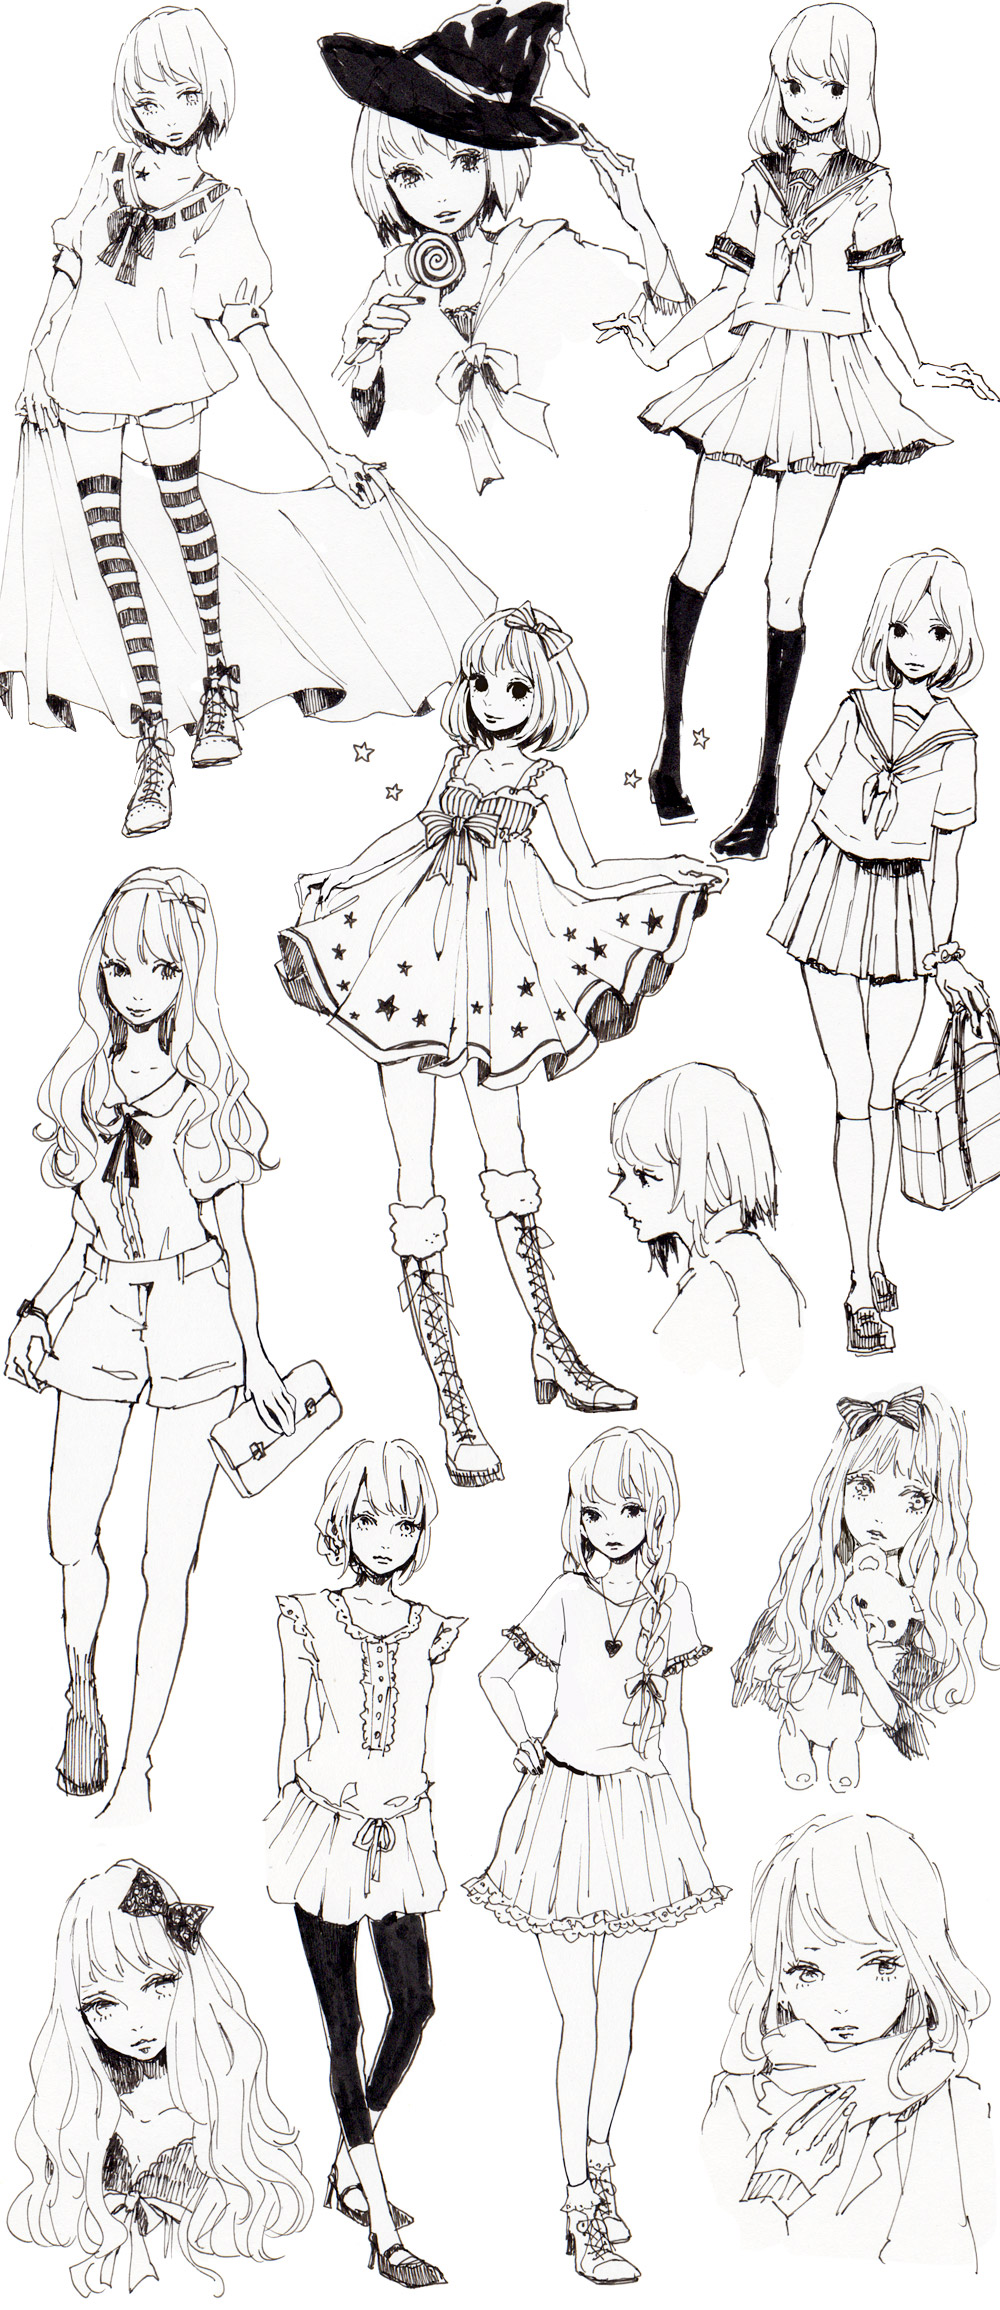 Different Poses Clothes References This Sheet Has A Lot Of Nice Simple Poses Plus Some Other Helpful References Manga Drawing Drawings Sketches